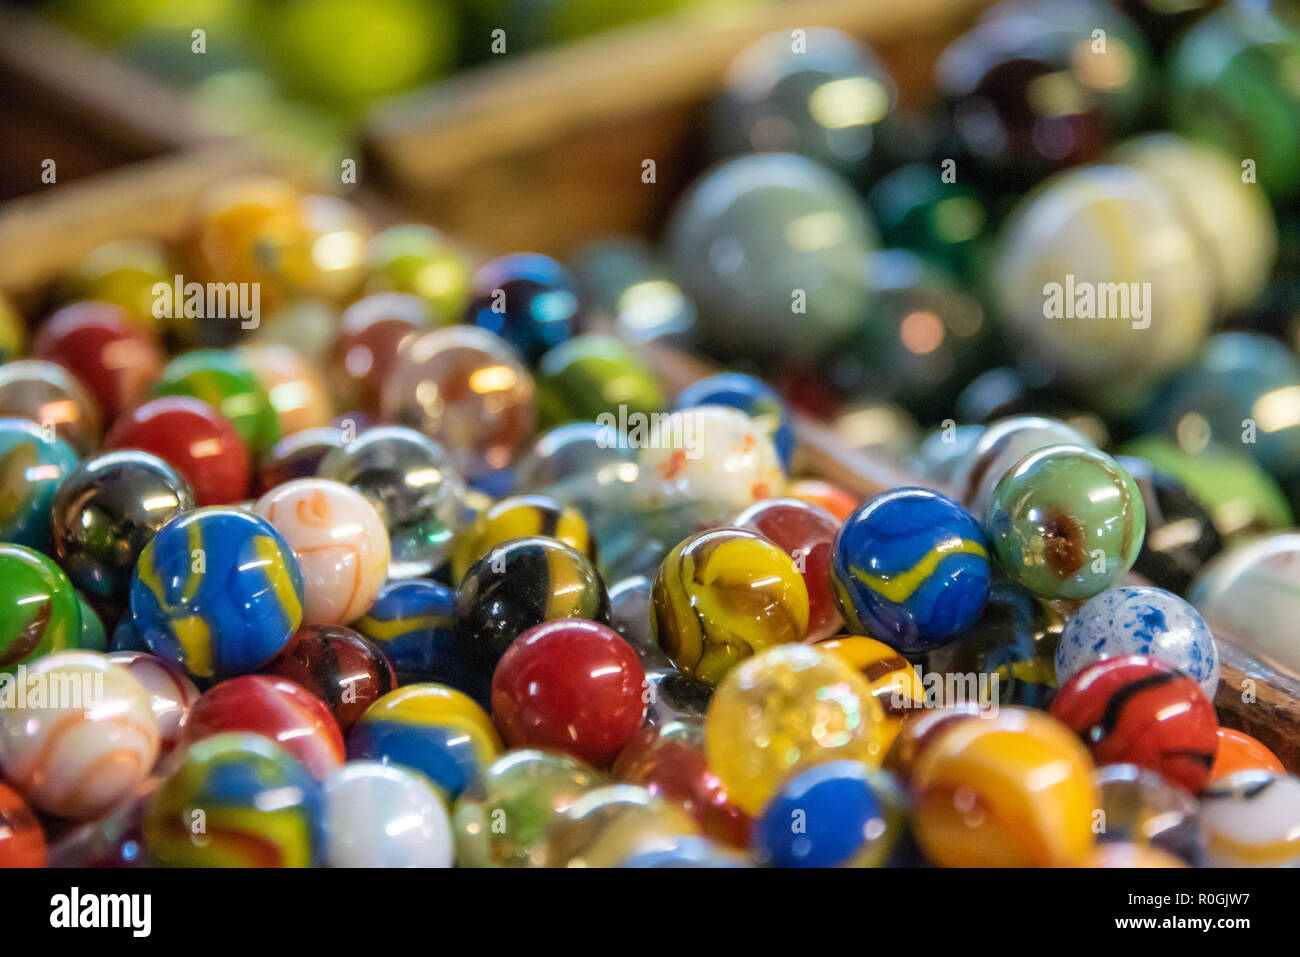 Old-fashioned colorful glass shooter marbles at an old country store in Northeast Georgia. (USA) - Stock Image